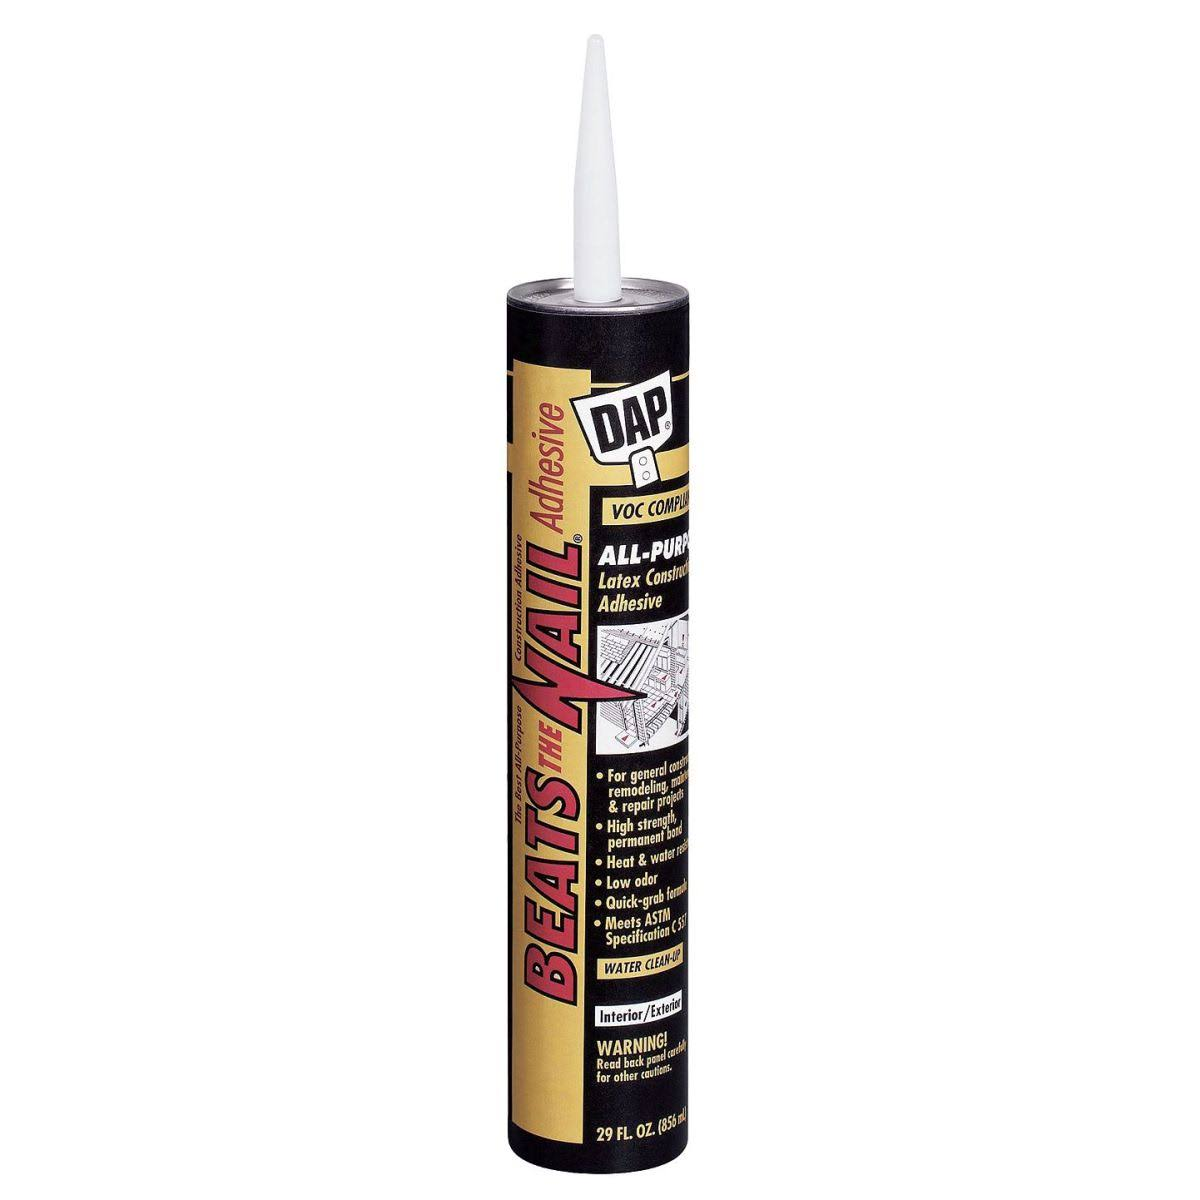 Dap 27058 Latex Construction Adhesive - White, 29oz